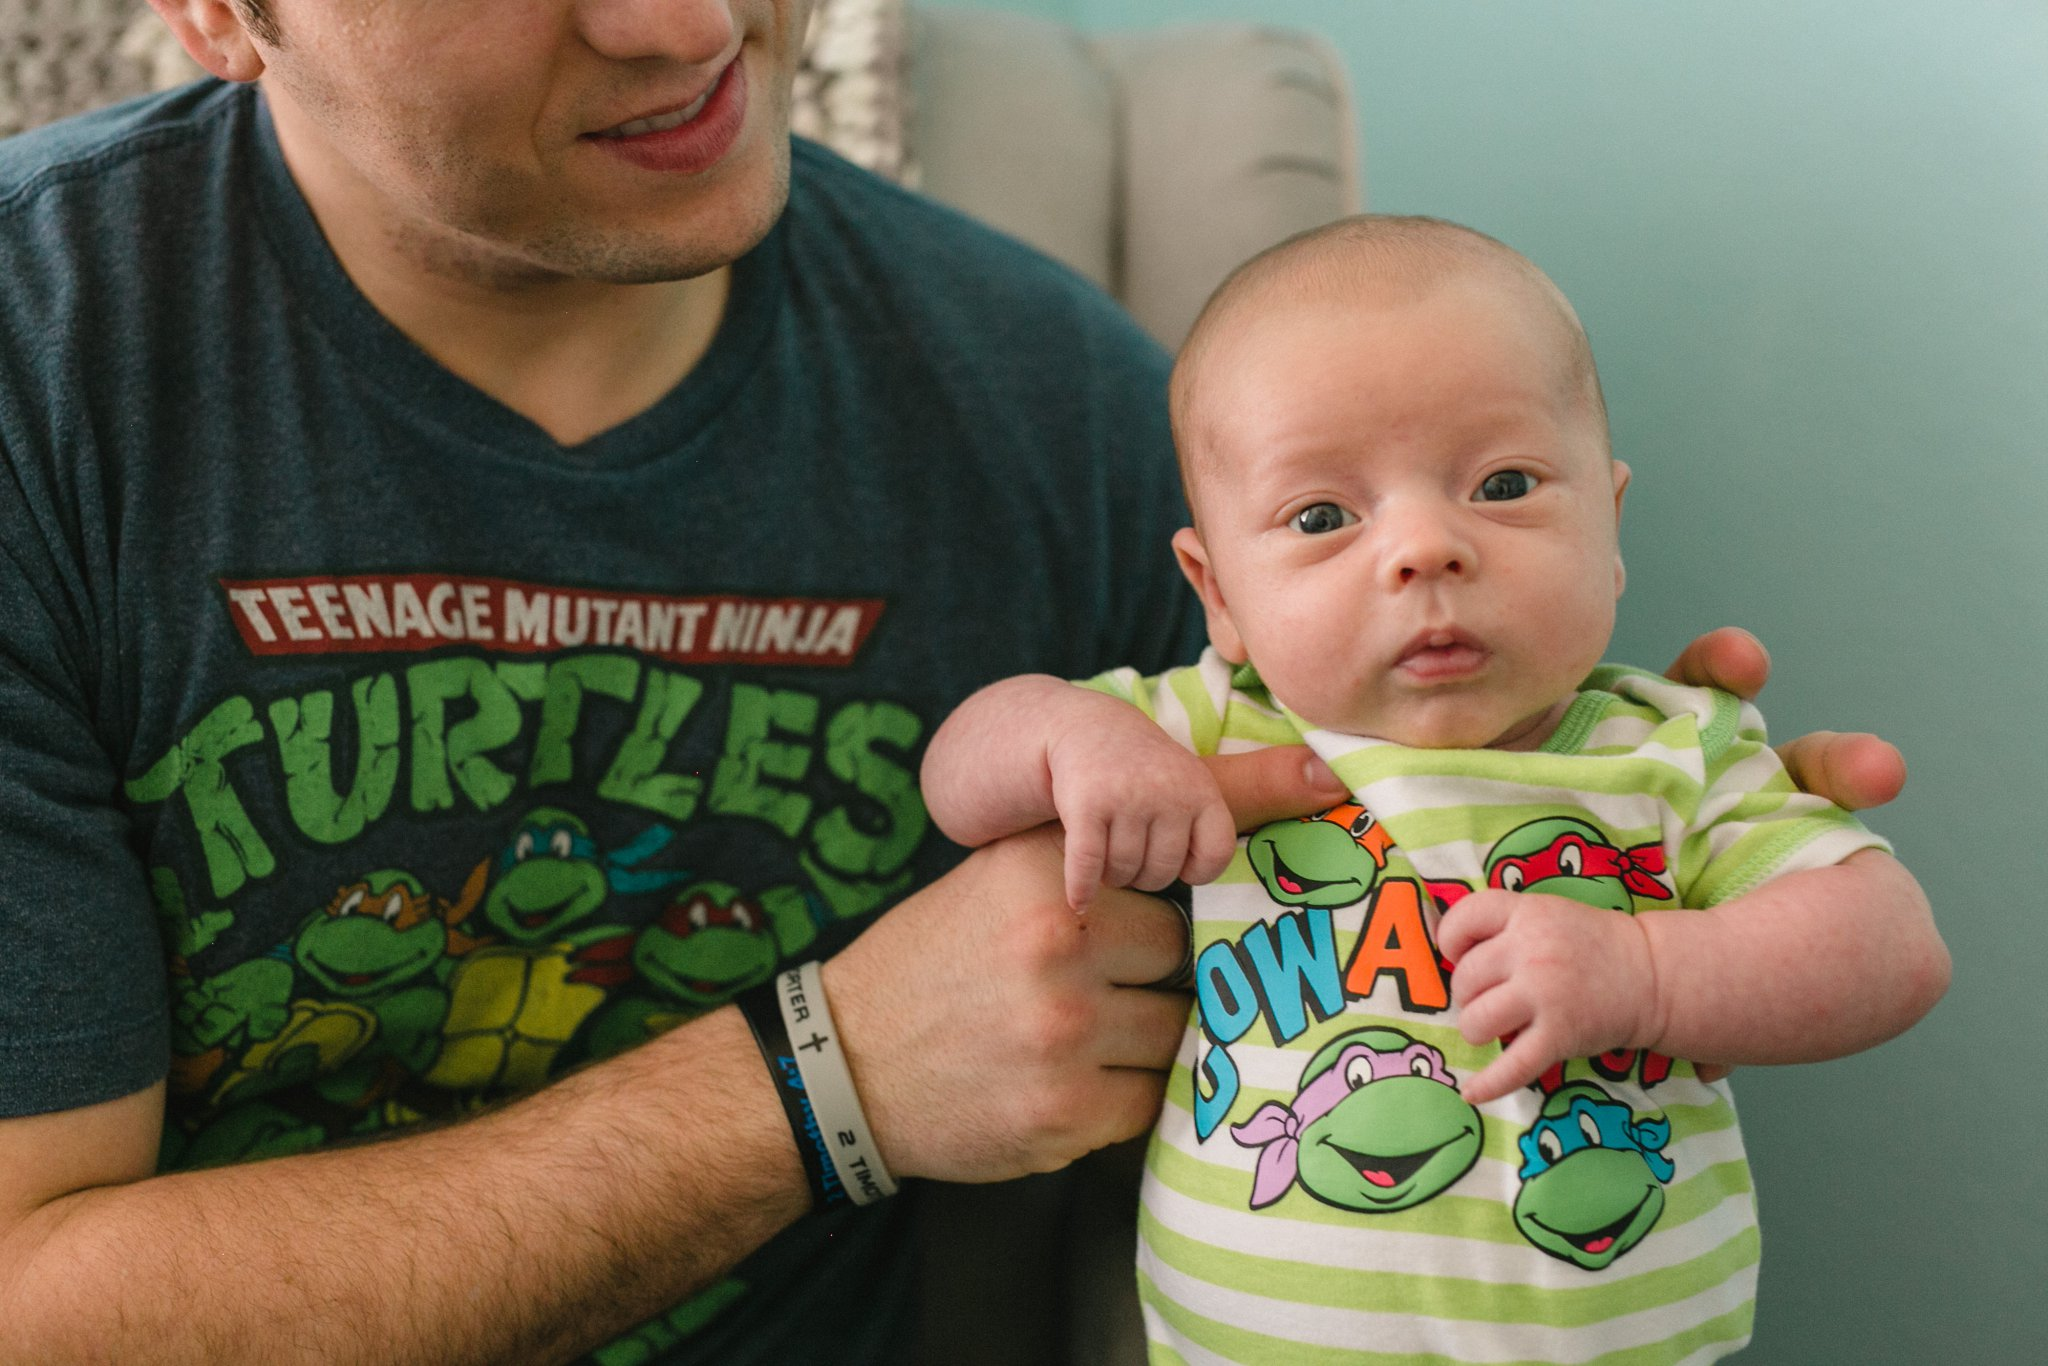 one month old baby with teenage mutant ninja turtles shirt